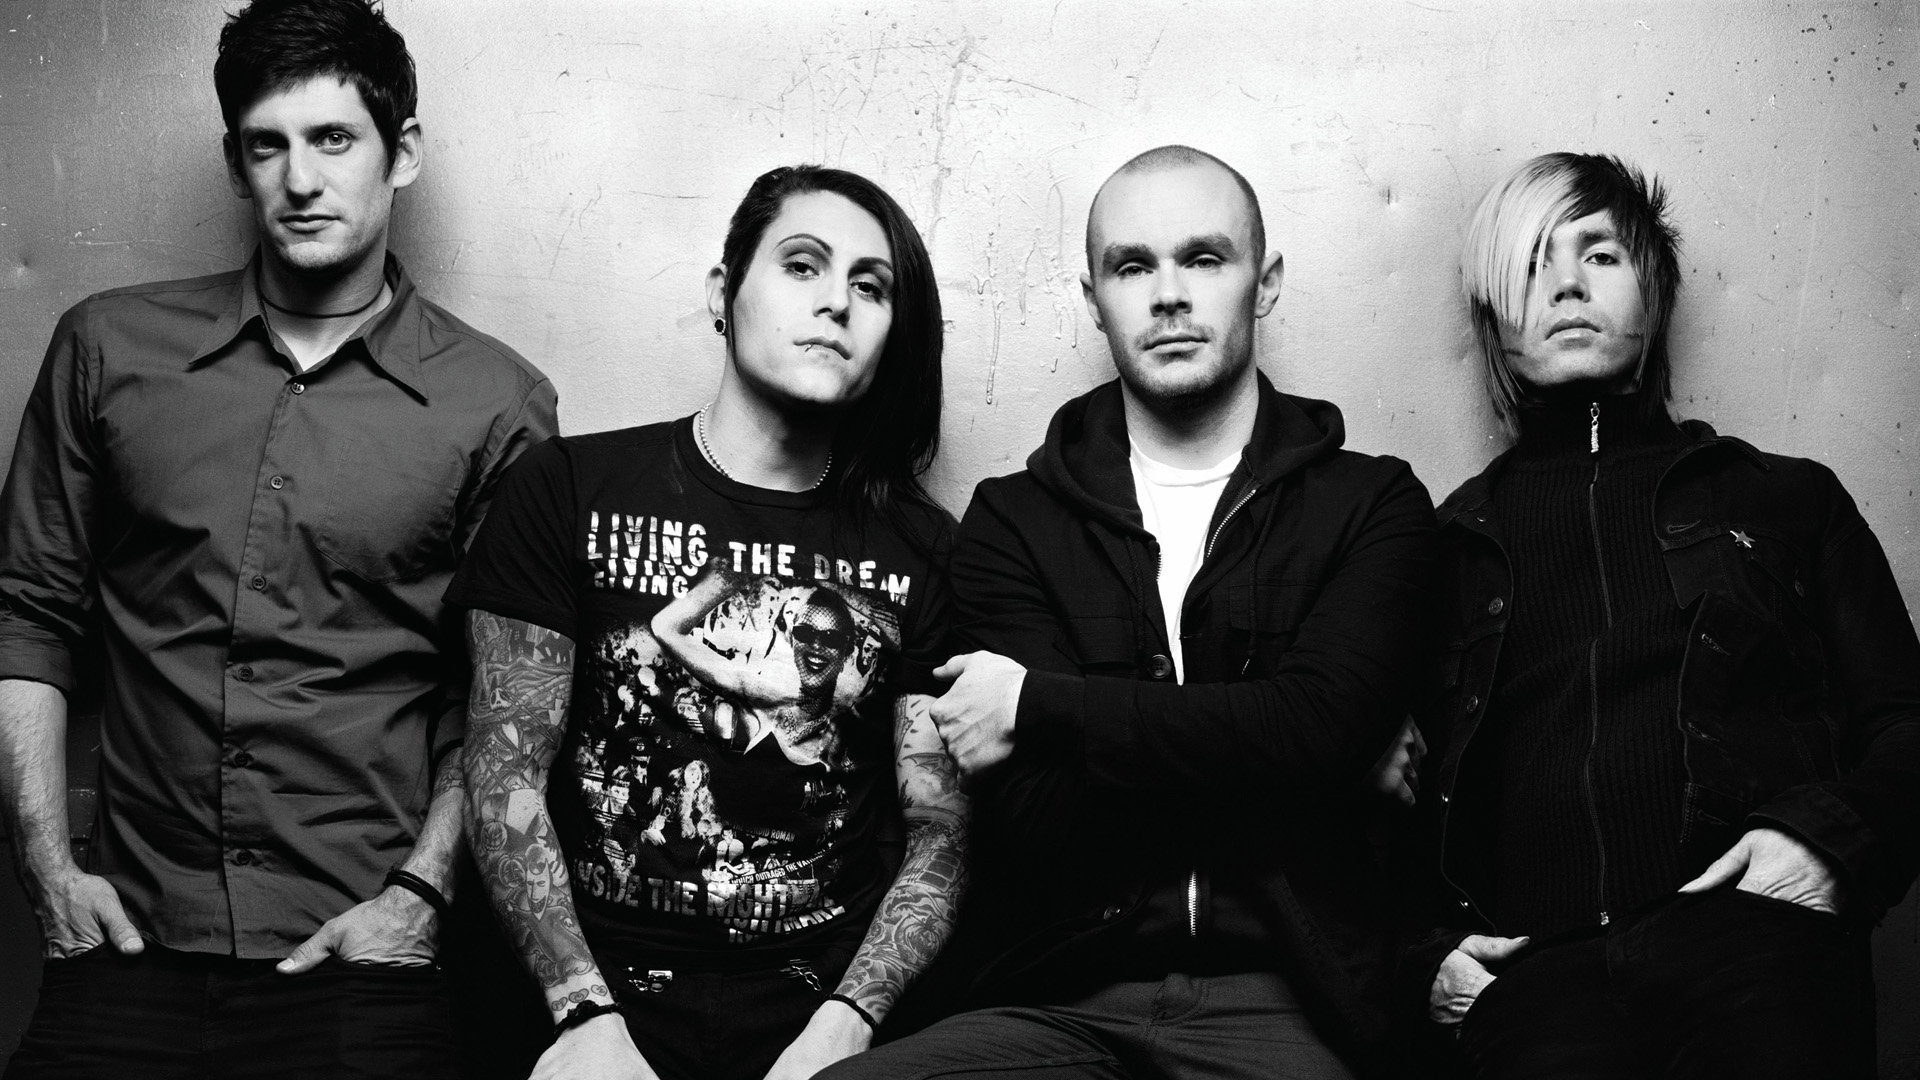 AFI (A Fire Inside)